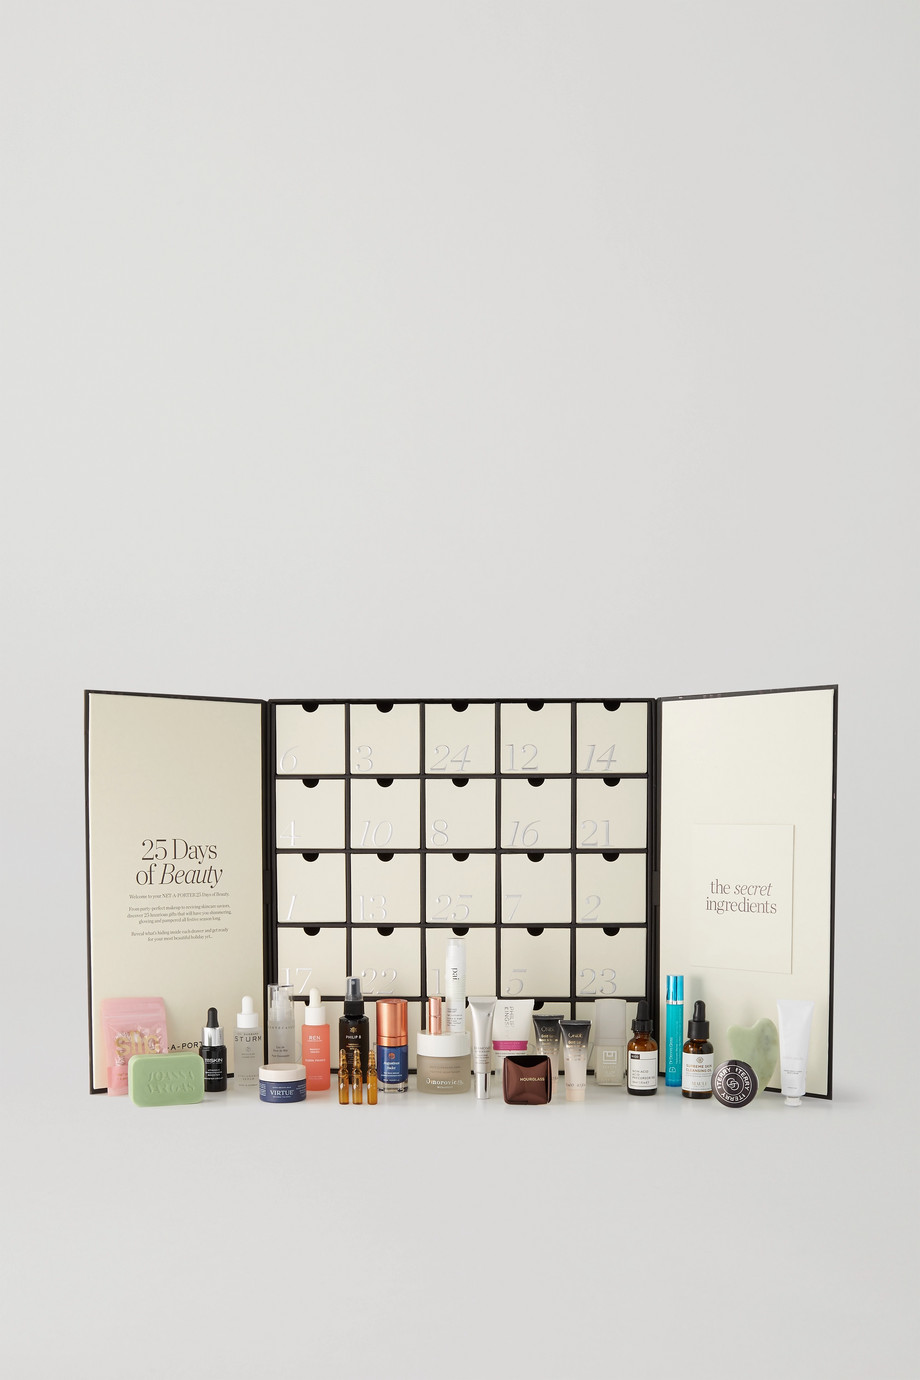 NET-A-PORTER 25 Days of Beauty – Adventskalender